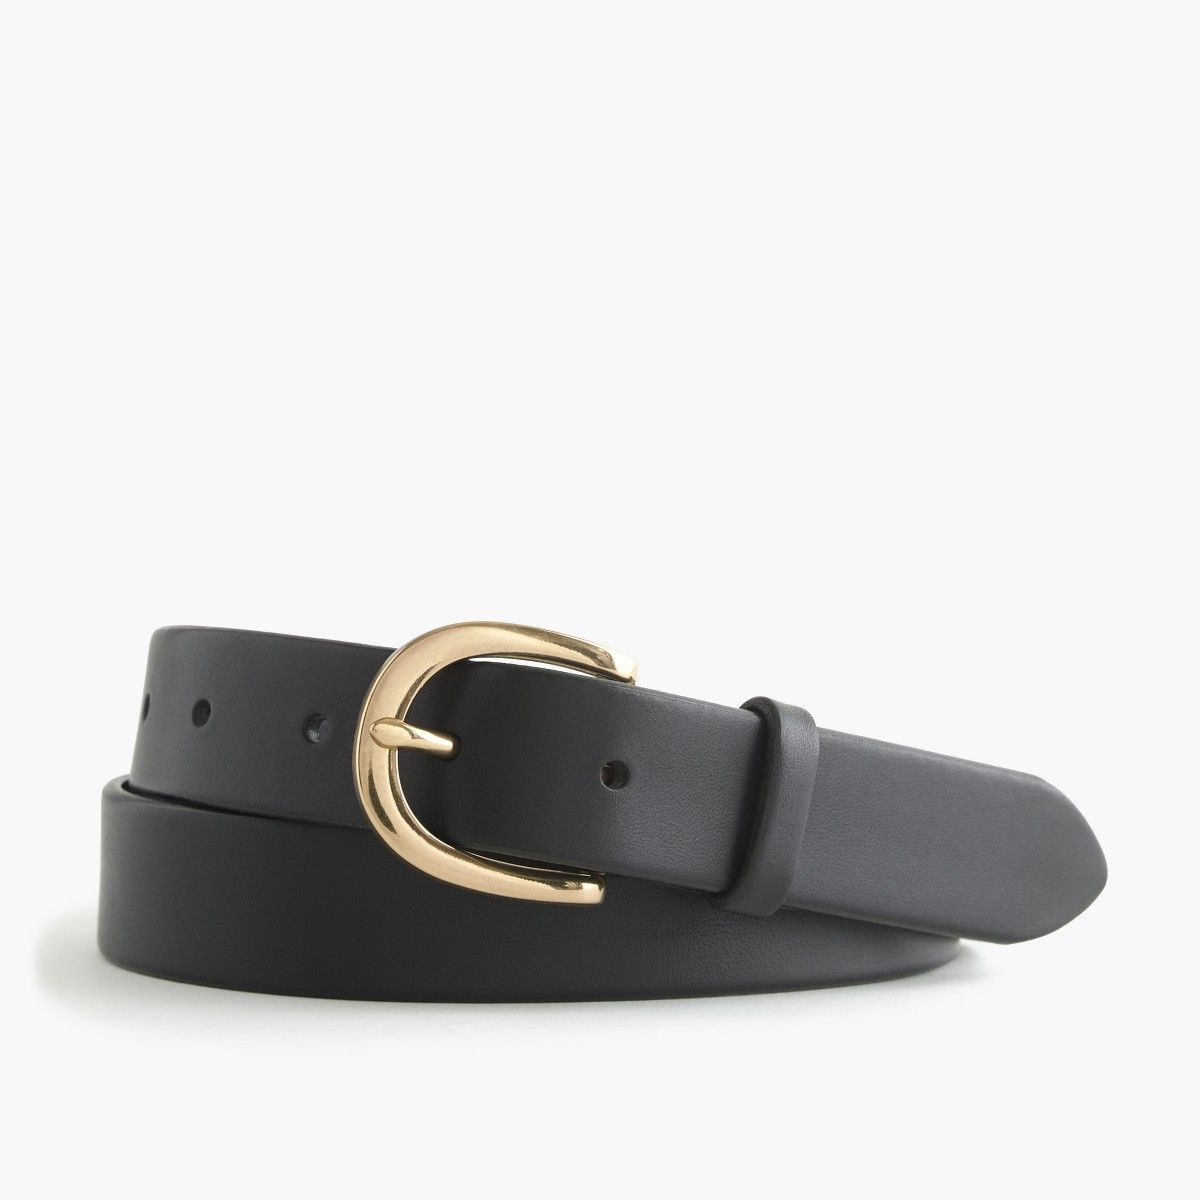 Shop the Classic Leather Belt at JCrew.com and see our entire selection of Women's Belts.